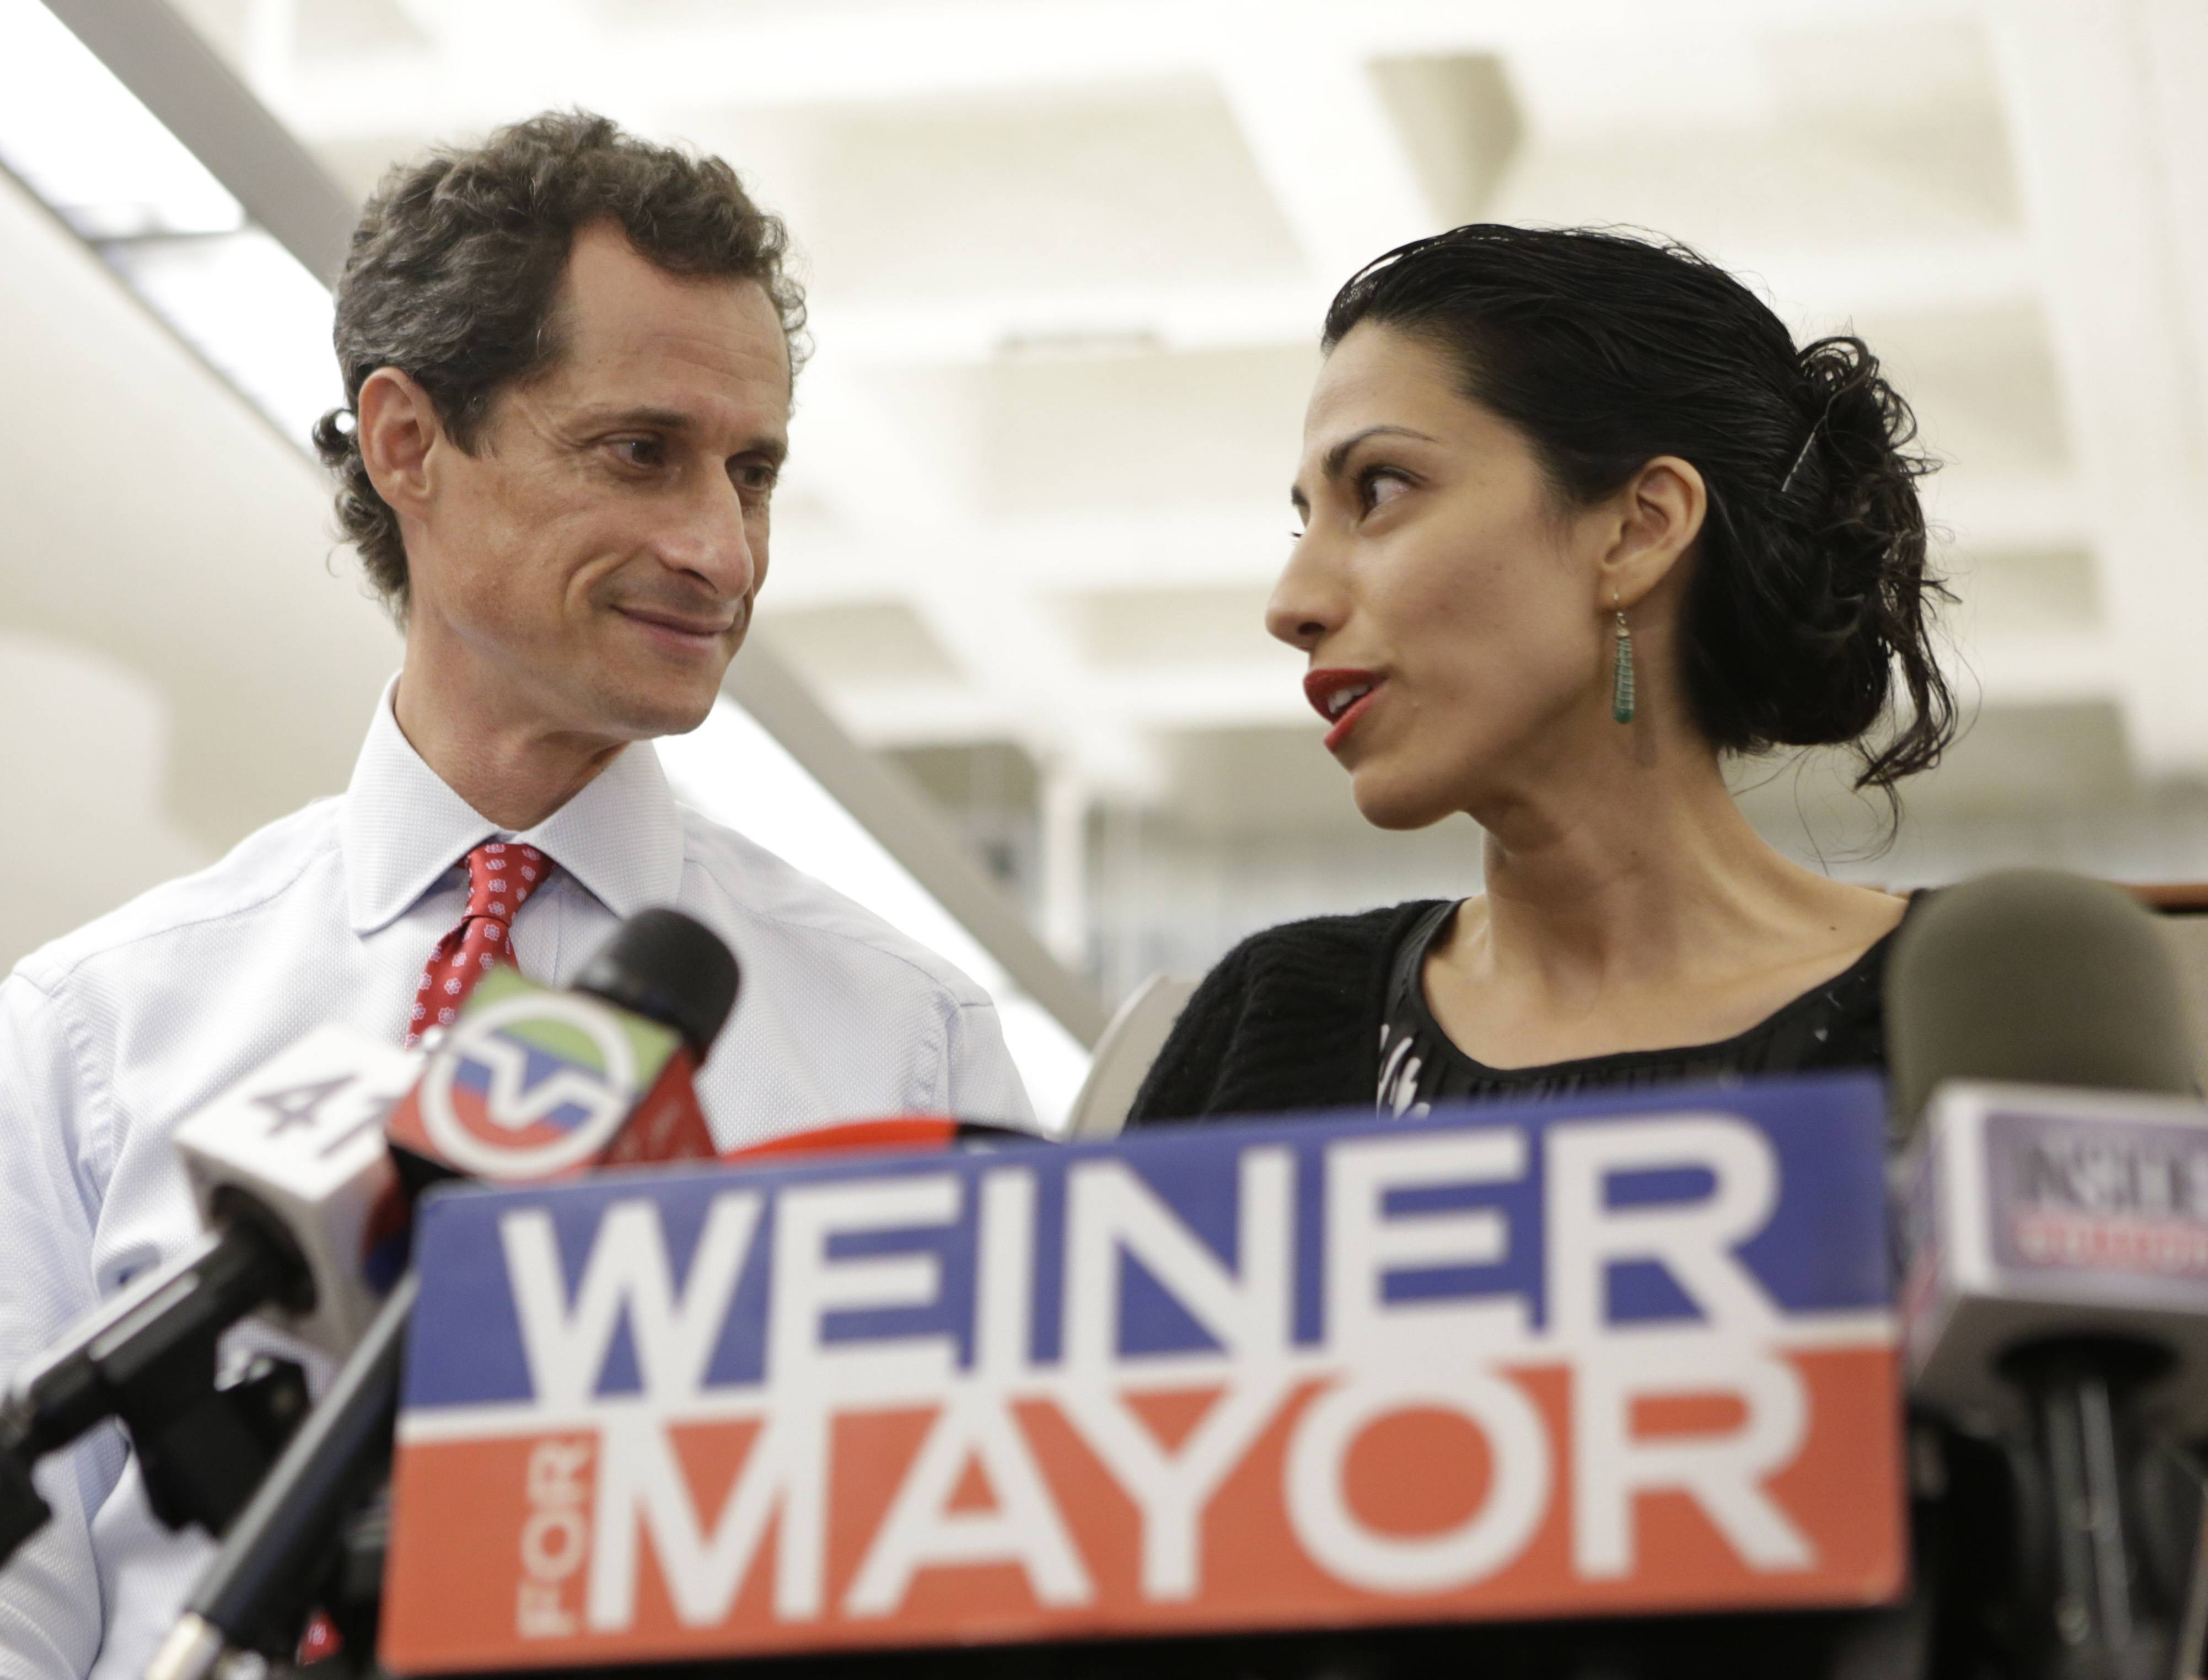 Huma Abedin, alongside her husband, then-New York mayoral candidate Anthony Weiner, speaks during a news conference in New York in July 2013. Democratic presidential candidate Hillary Clinton aide Huma Abedin says she is separating from husband Anthony Weiner after another sexting revelation involving the former congressman from New York.